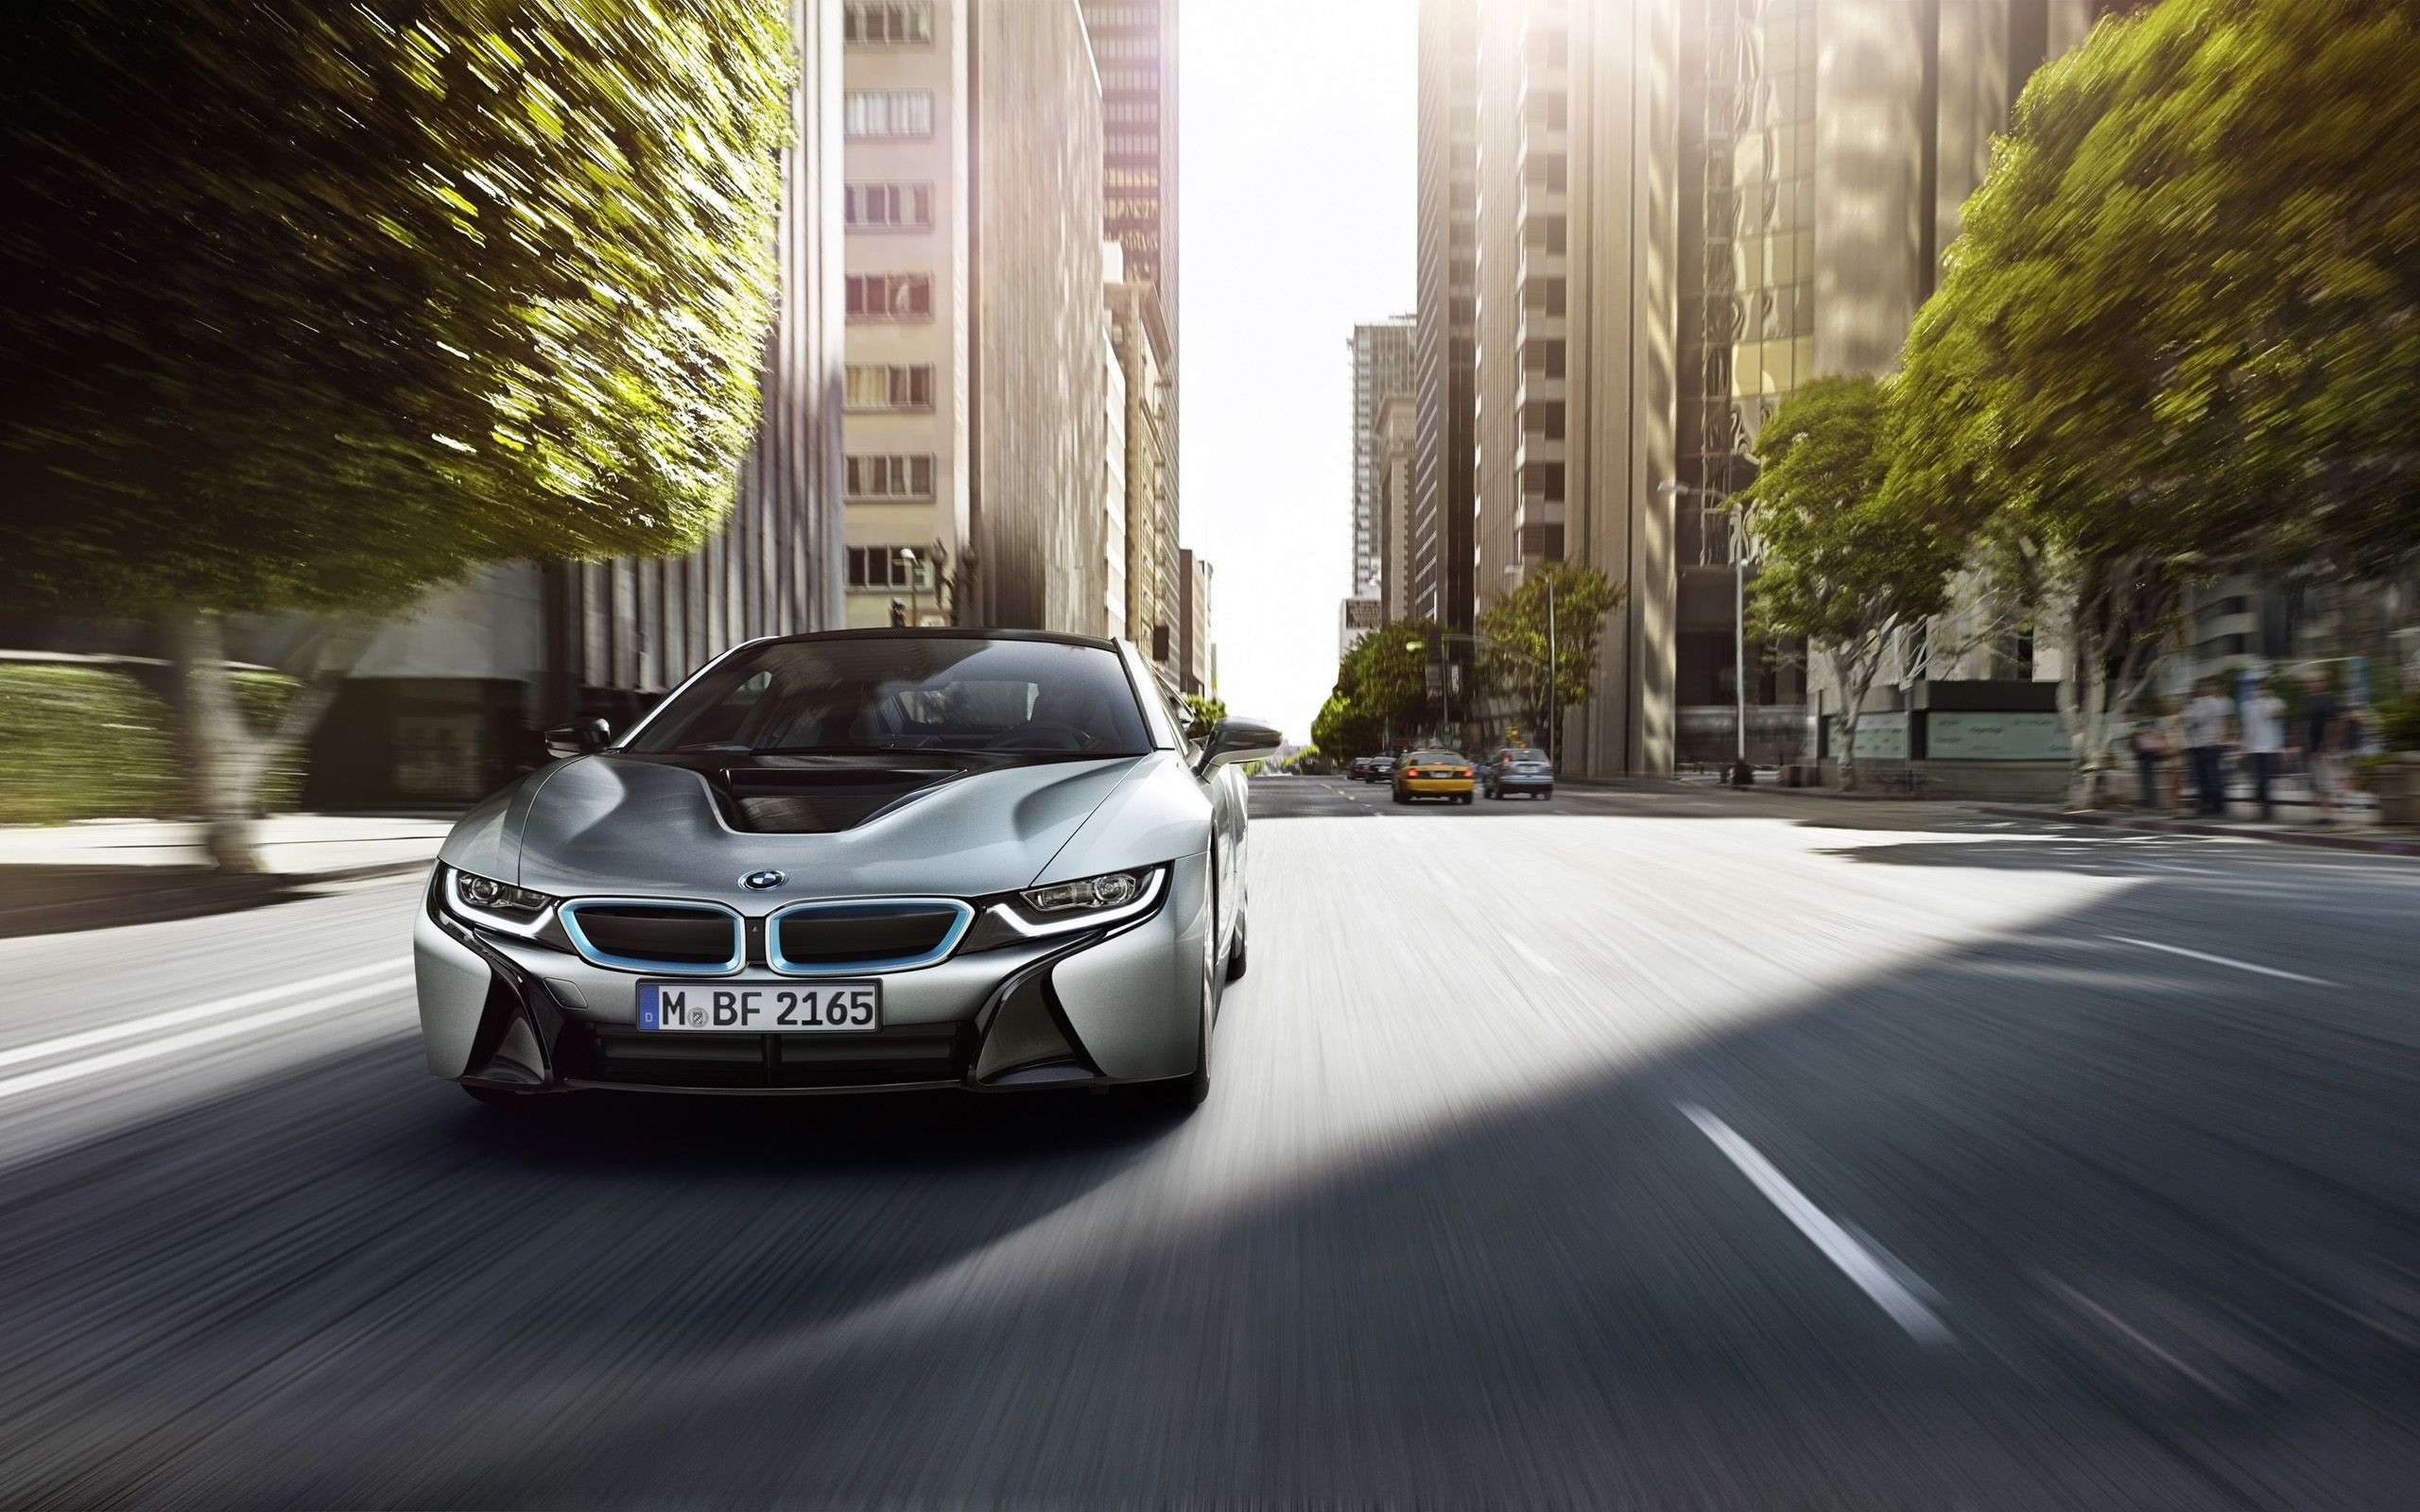 2015 Bmw I8 Picture Hd Car Wallpaper Places To Visit Pinterest